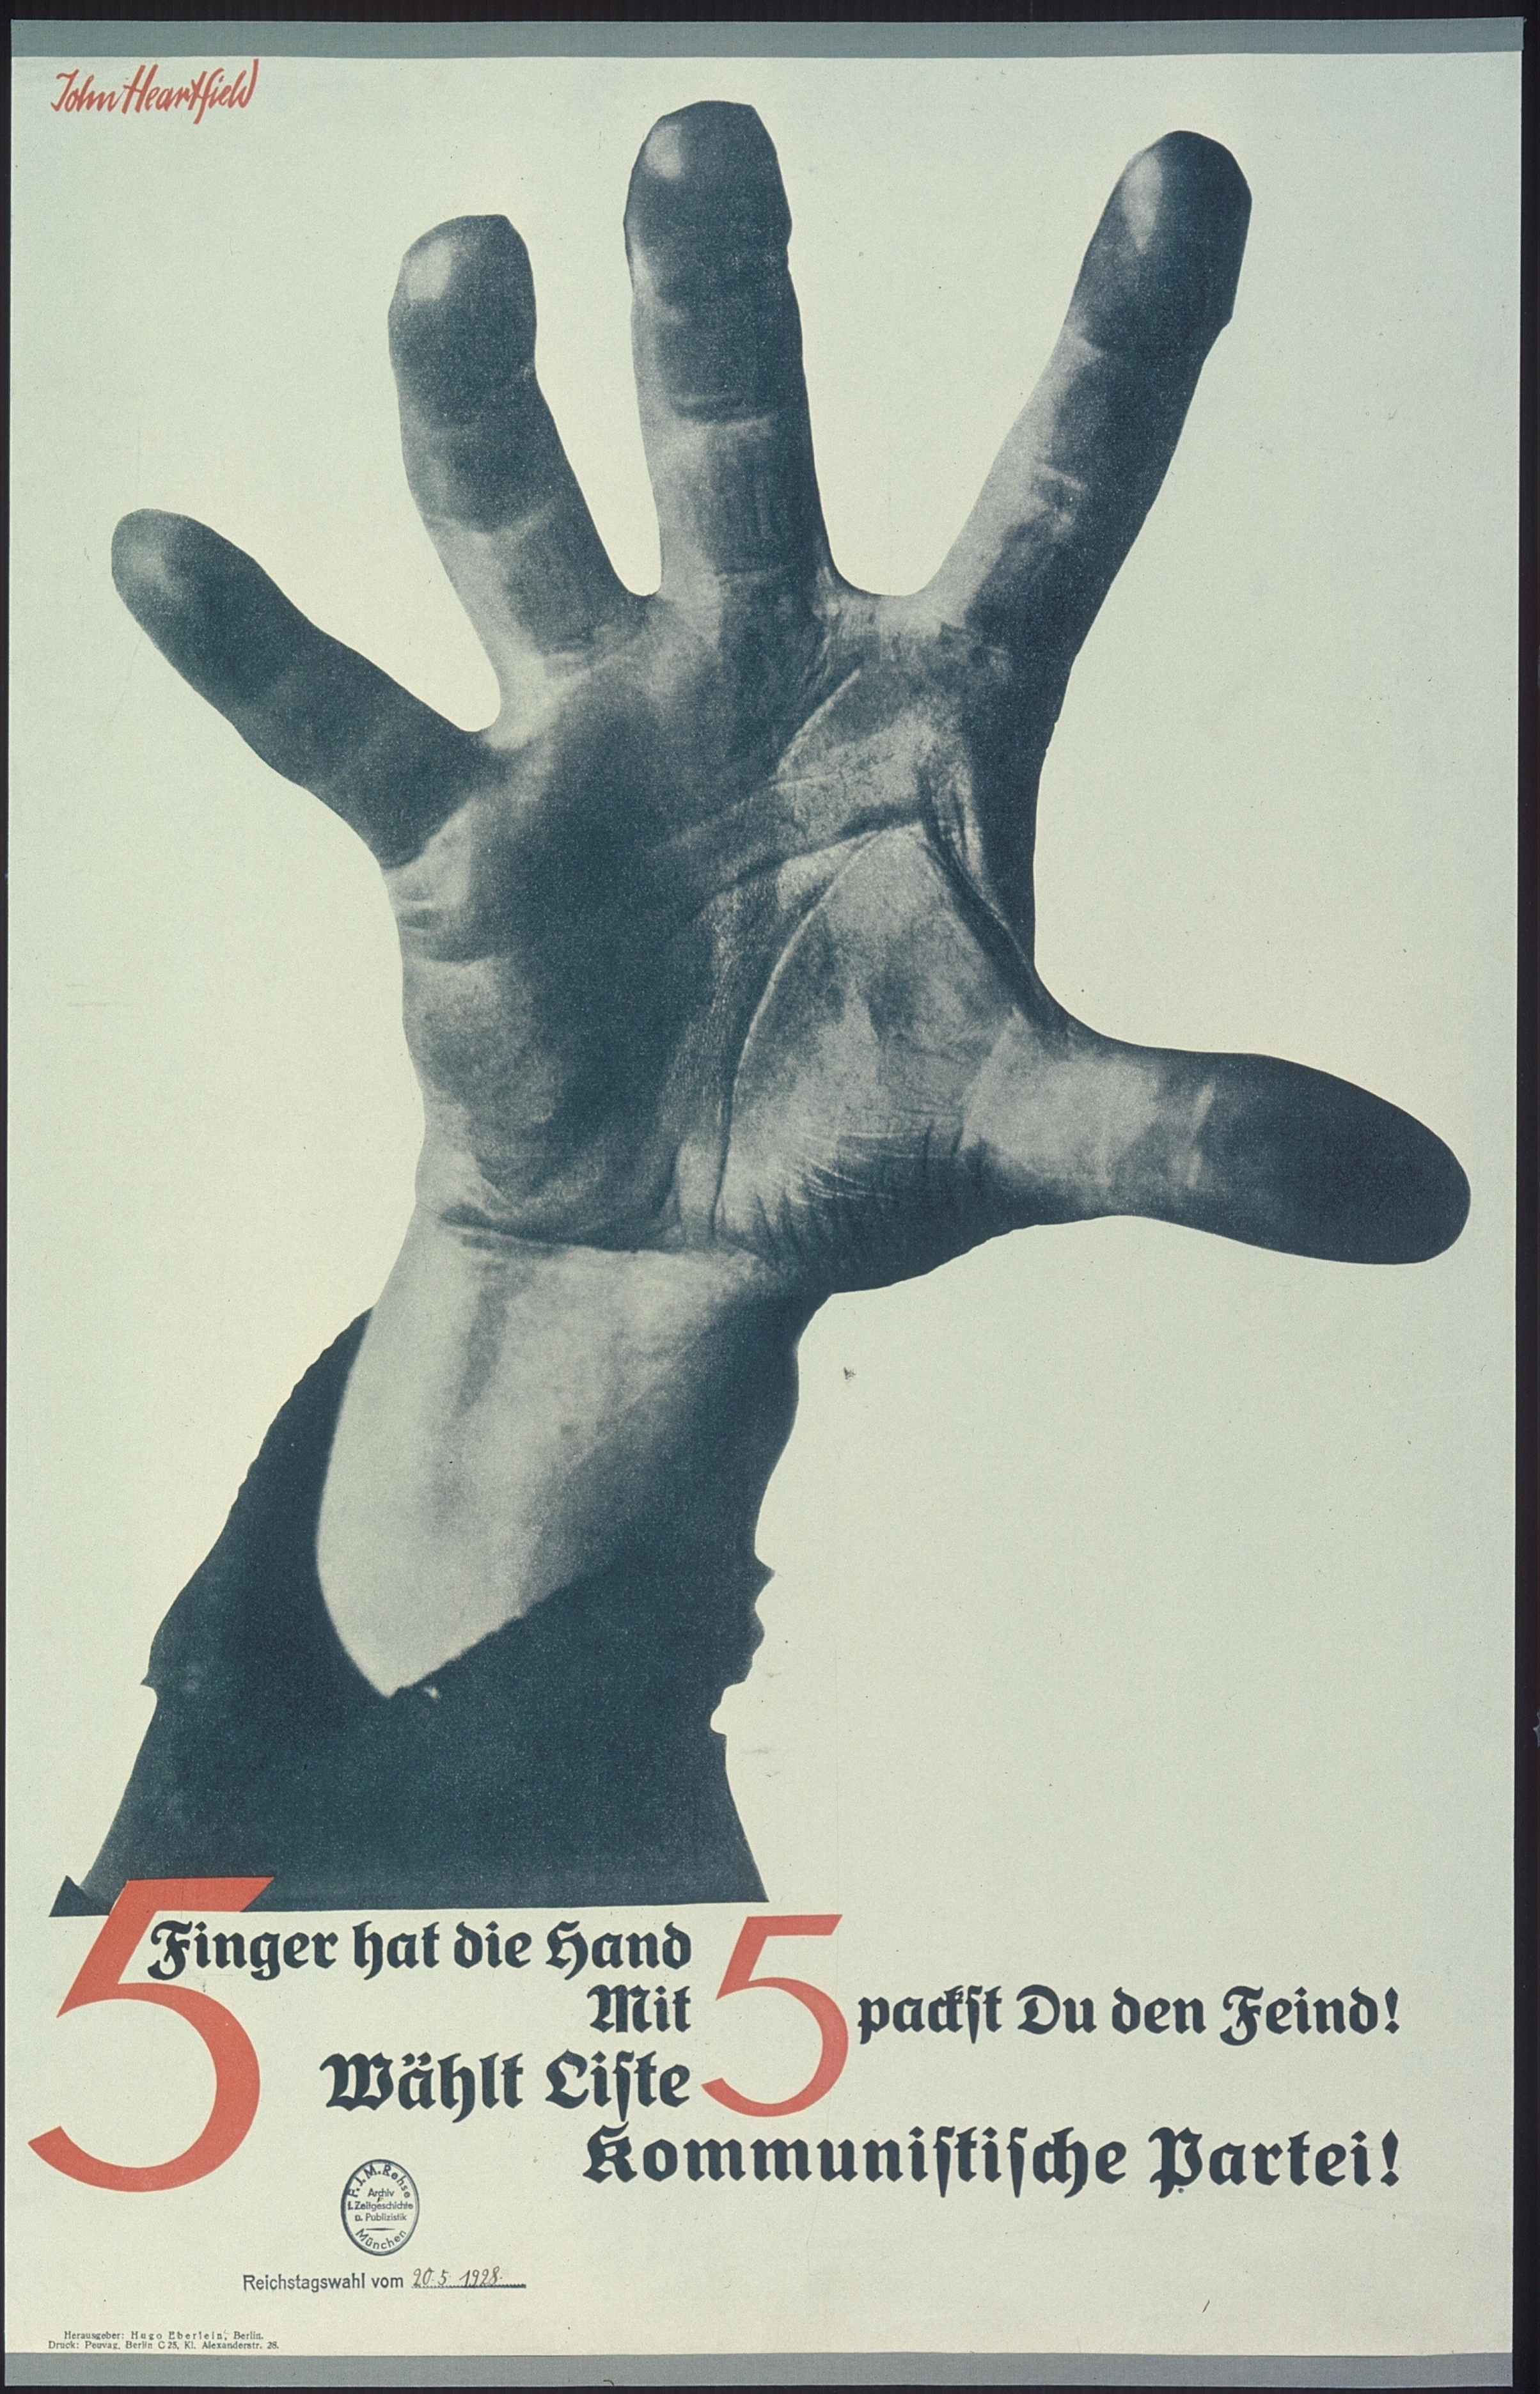 John Heartfield, 5 Finger hat die Hand (Five Fingers Has the Hand), 1928, KPD election poster.